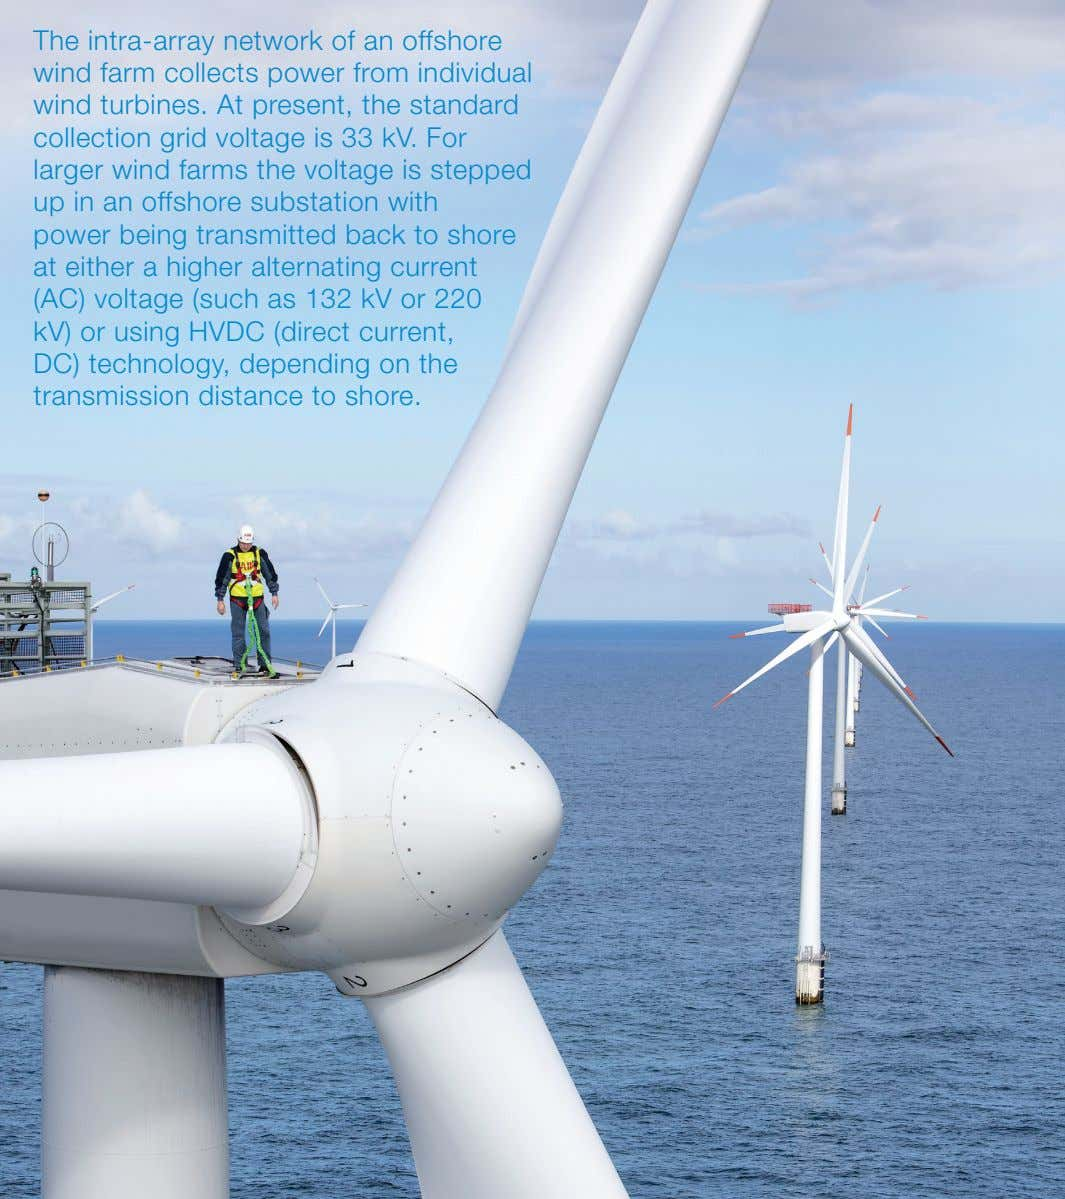 The intra-array network of an offshore wind farm collects power from individual wind turbines. At